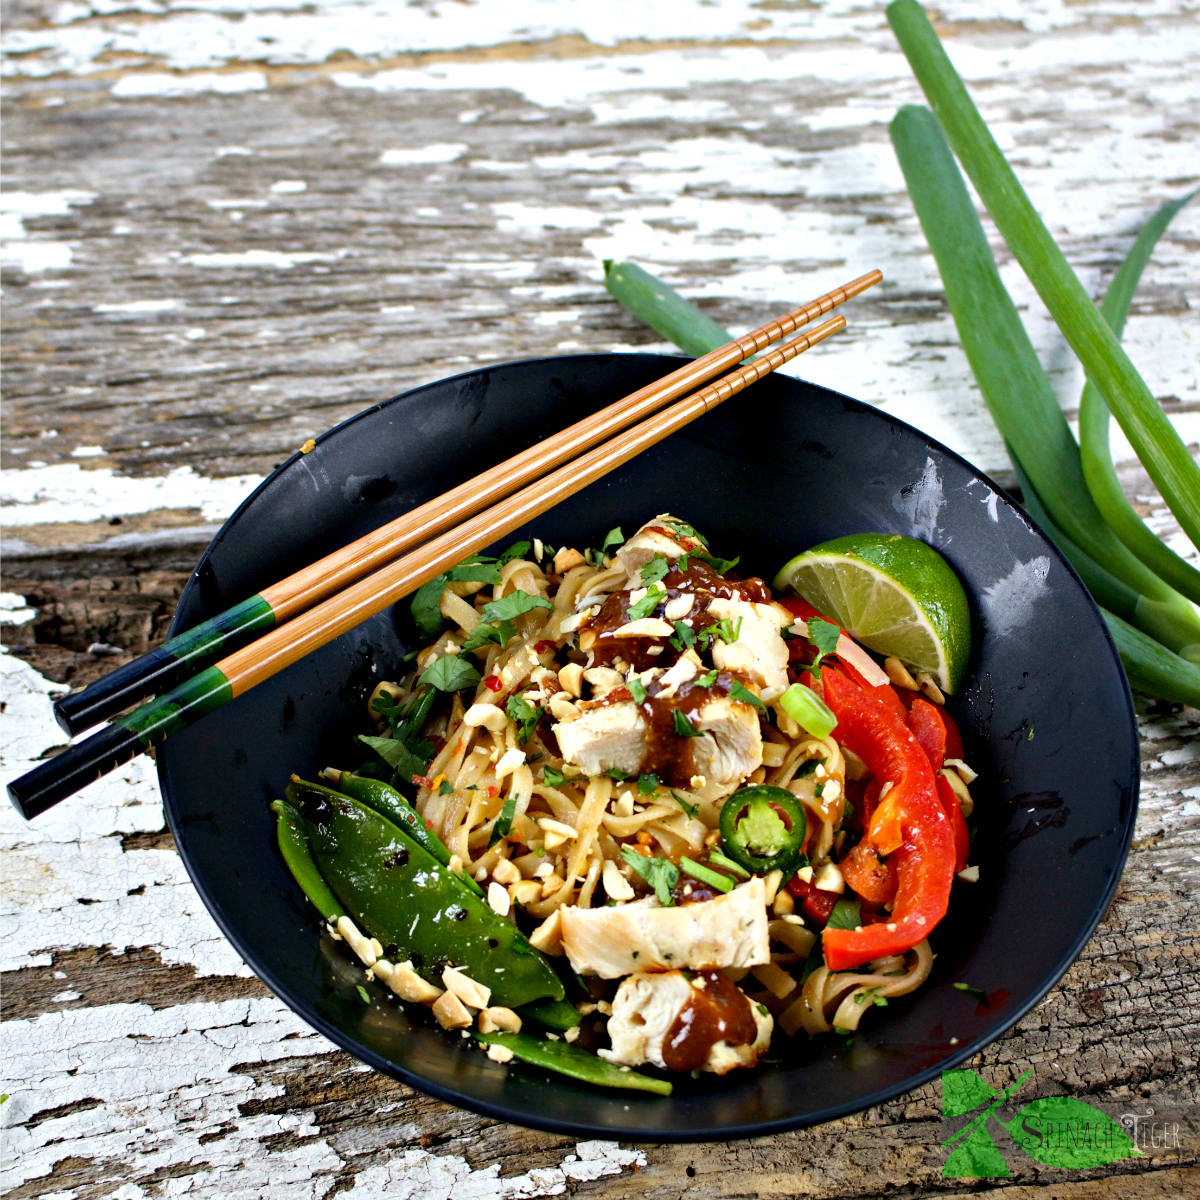 Gluten Free Thai Peanut Noodles with chicken Skewers from Spinach Tiger